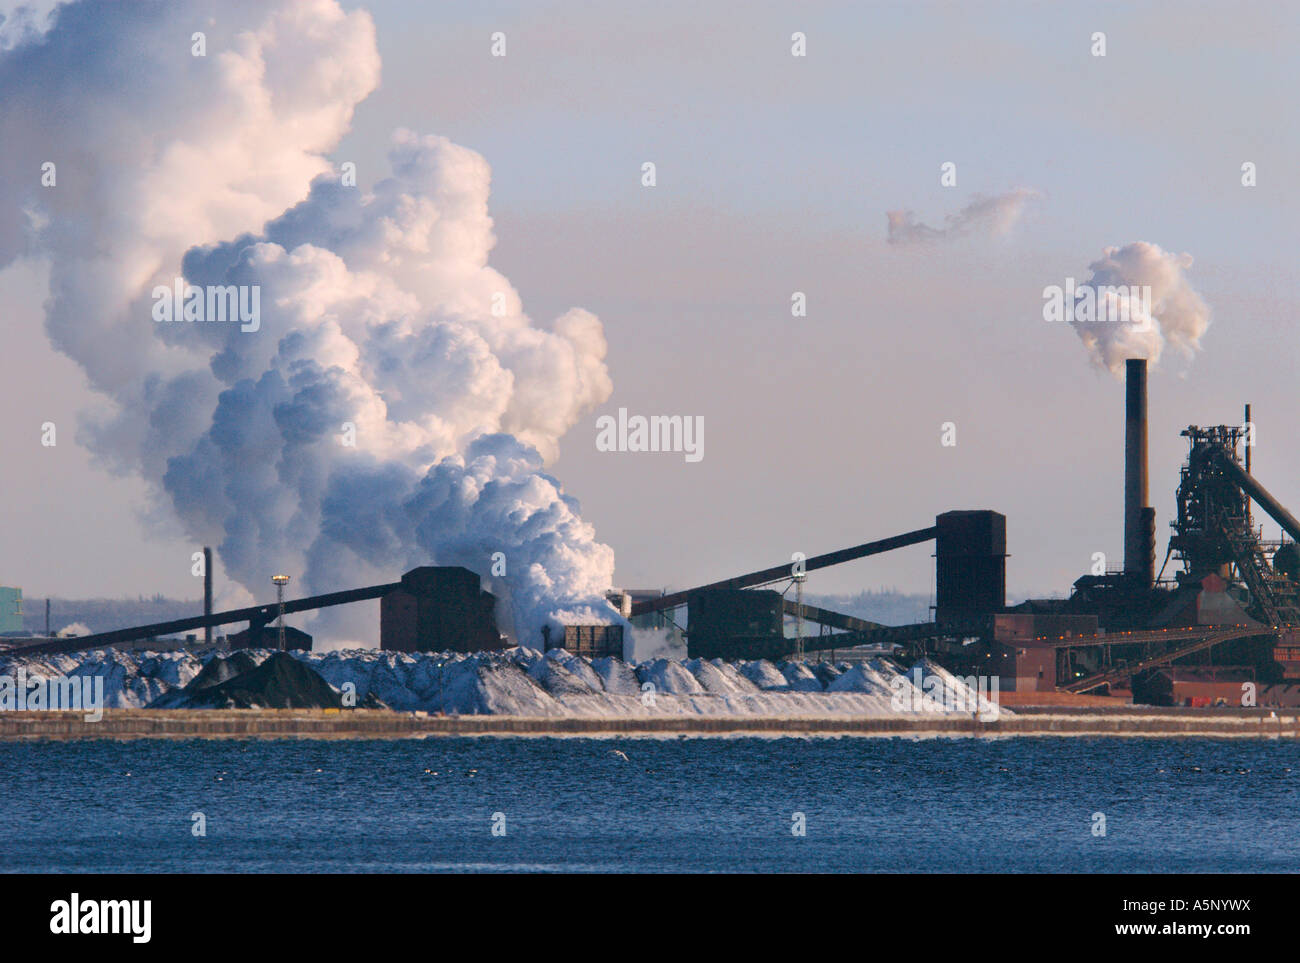 Industry carbon dioxide emission and pollution - Stock Image